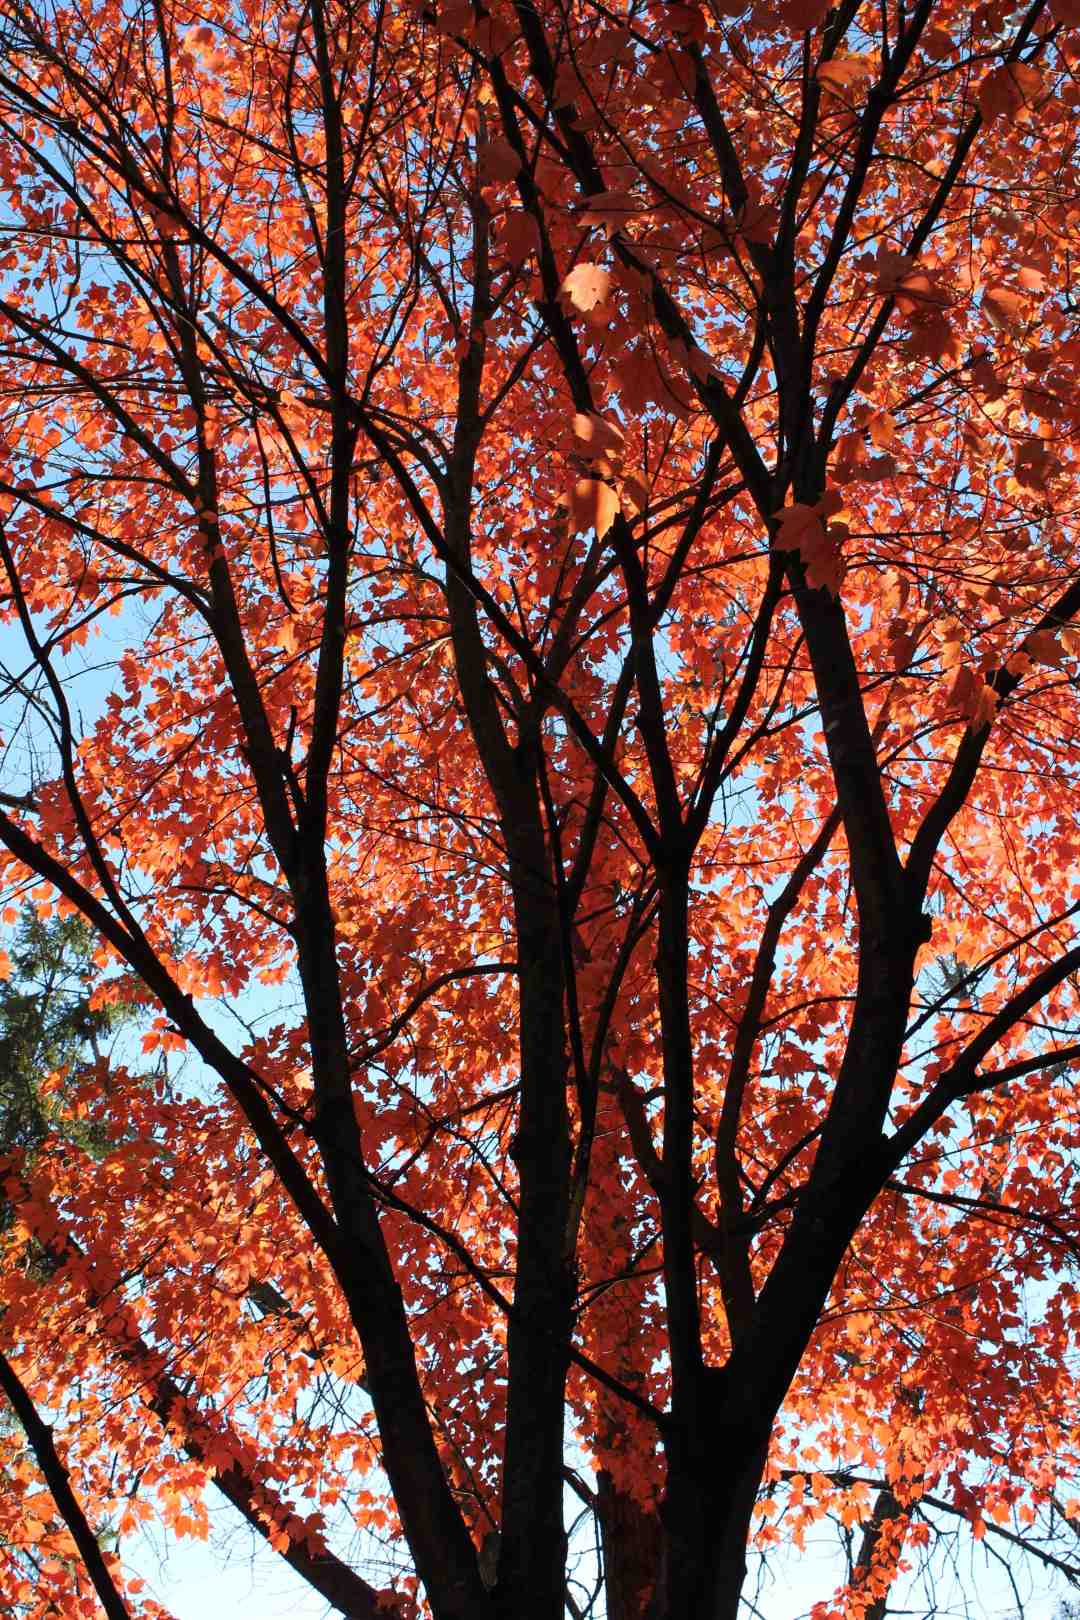 Autumn Trees at the MN Zoo